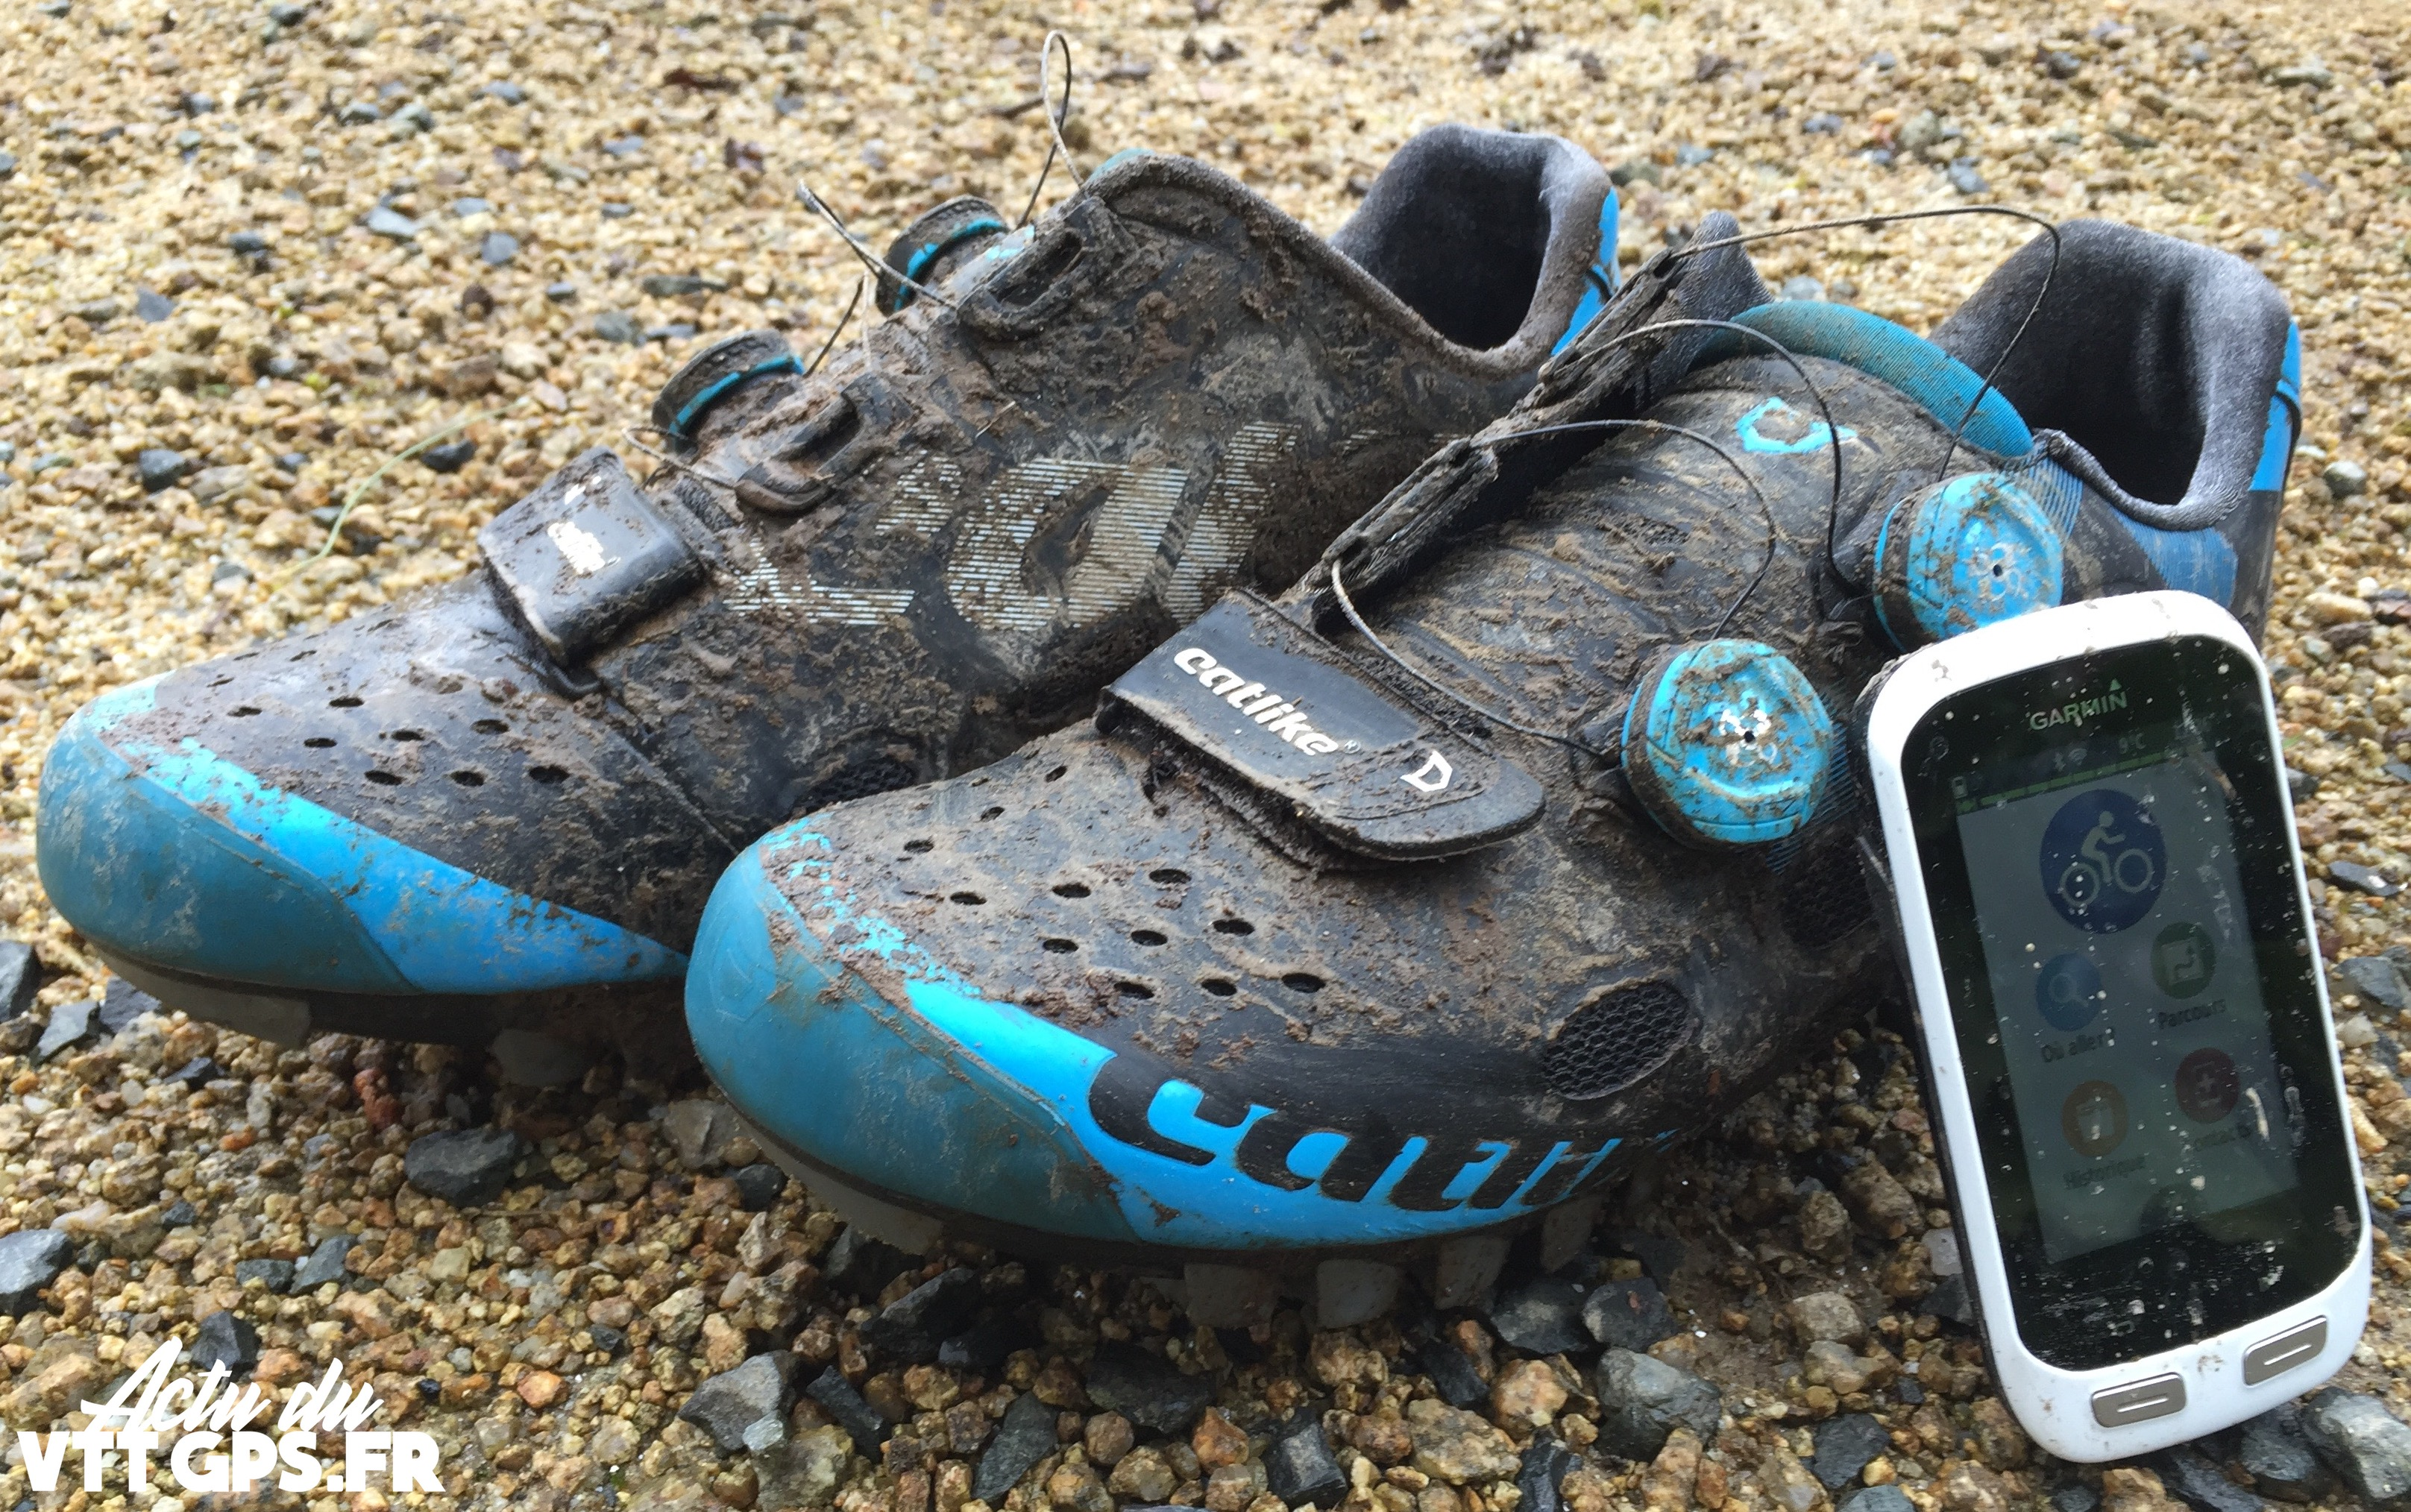 TEST LONGUE DUREE DES CHAUSSURES CATLIKE WHISPER MTB